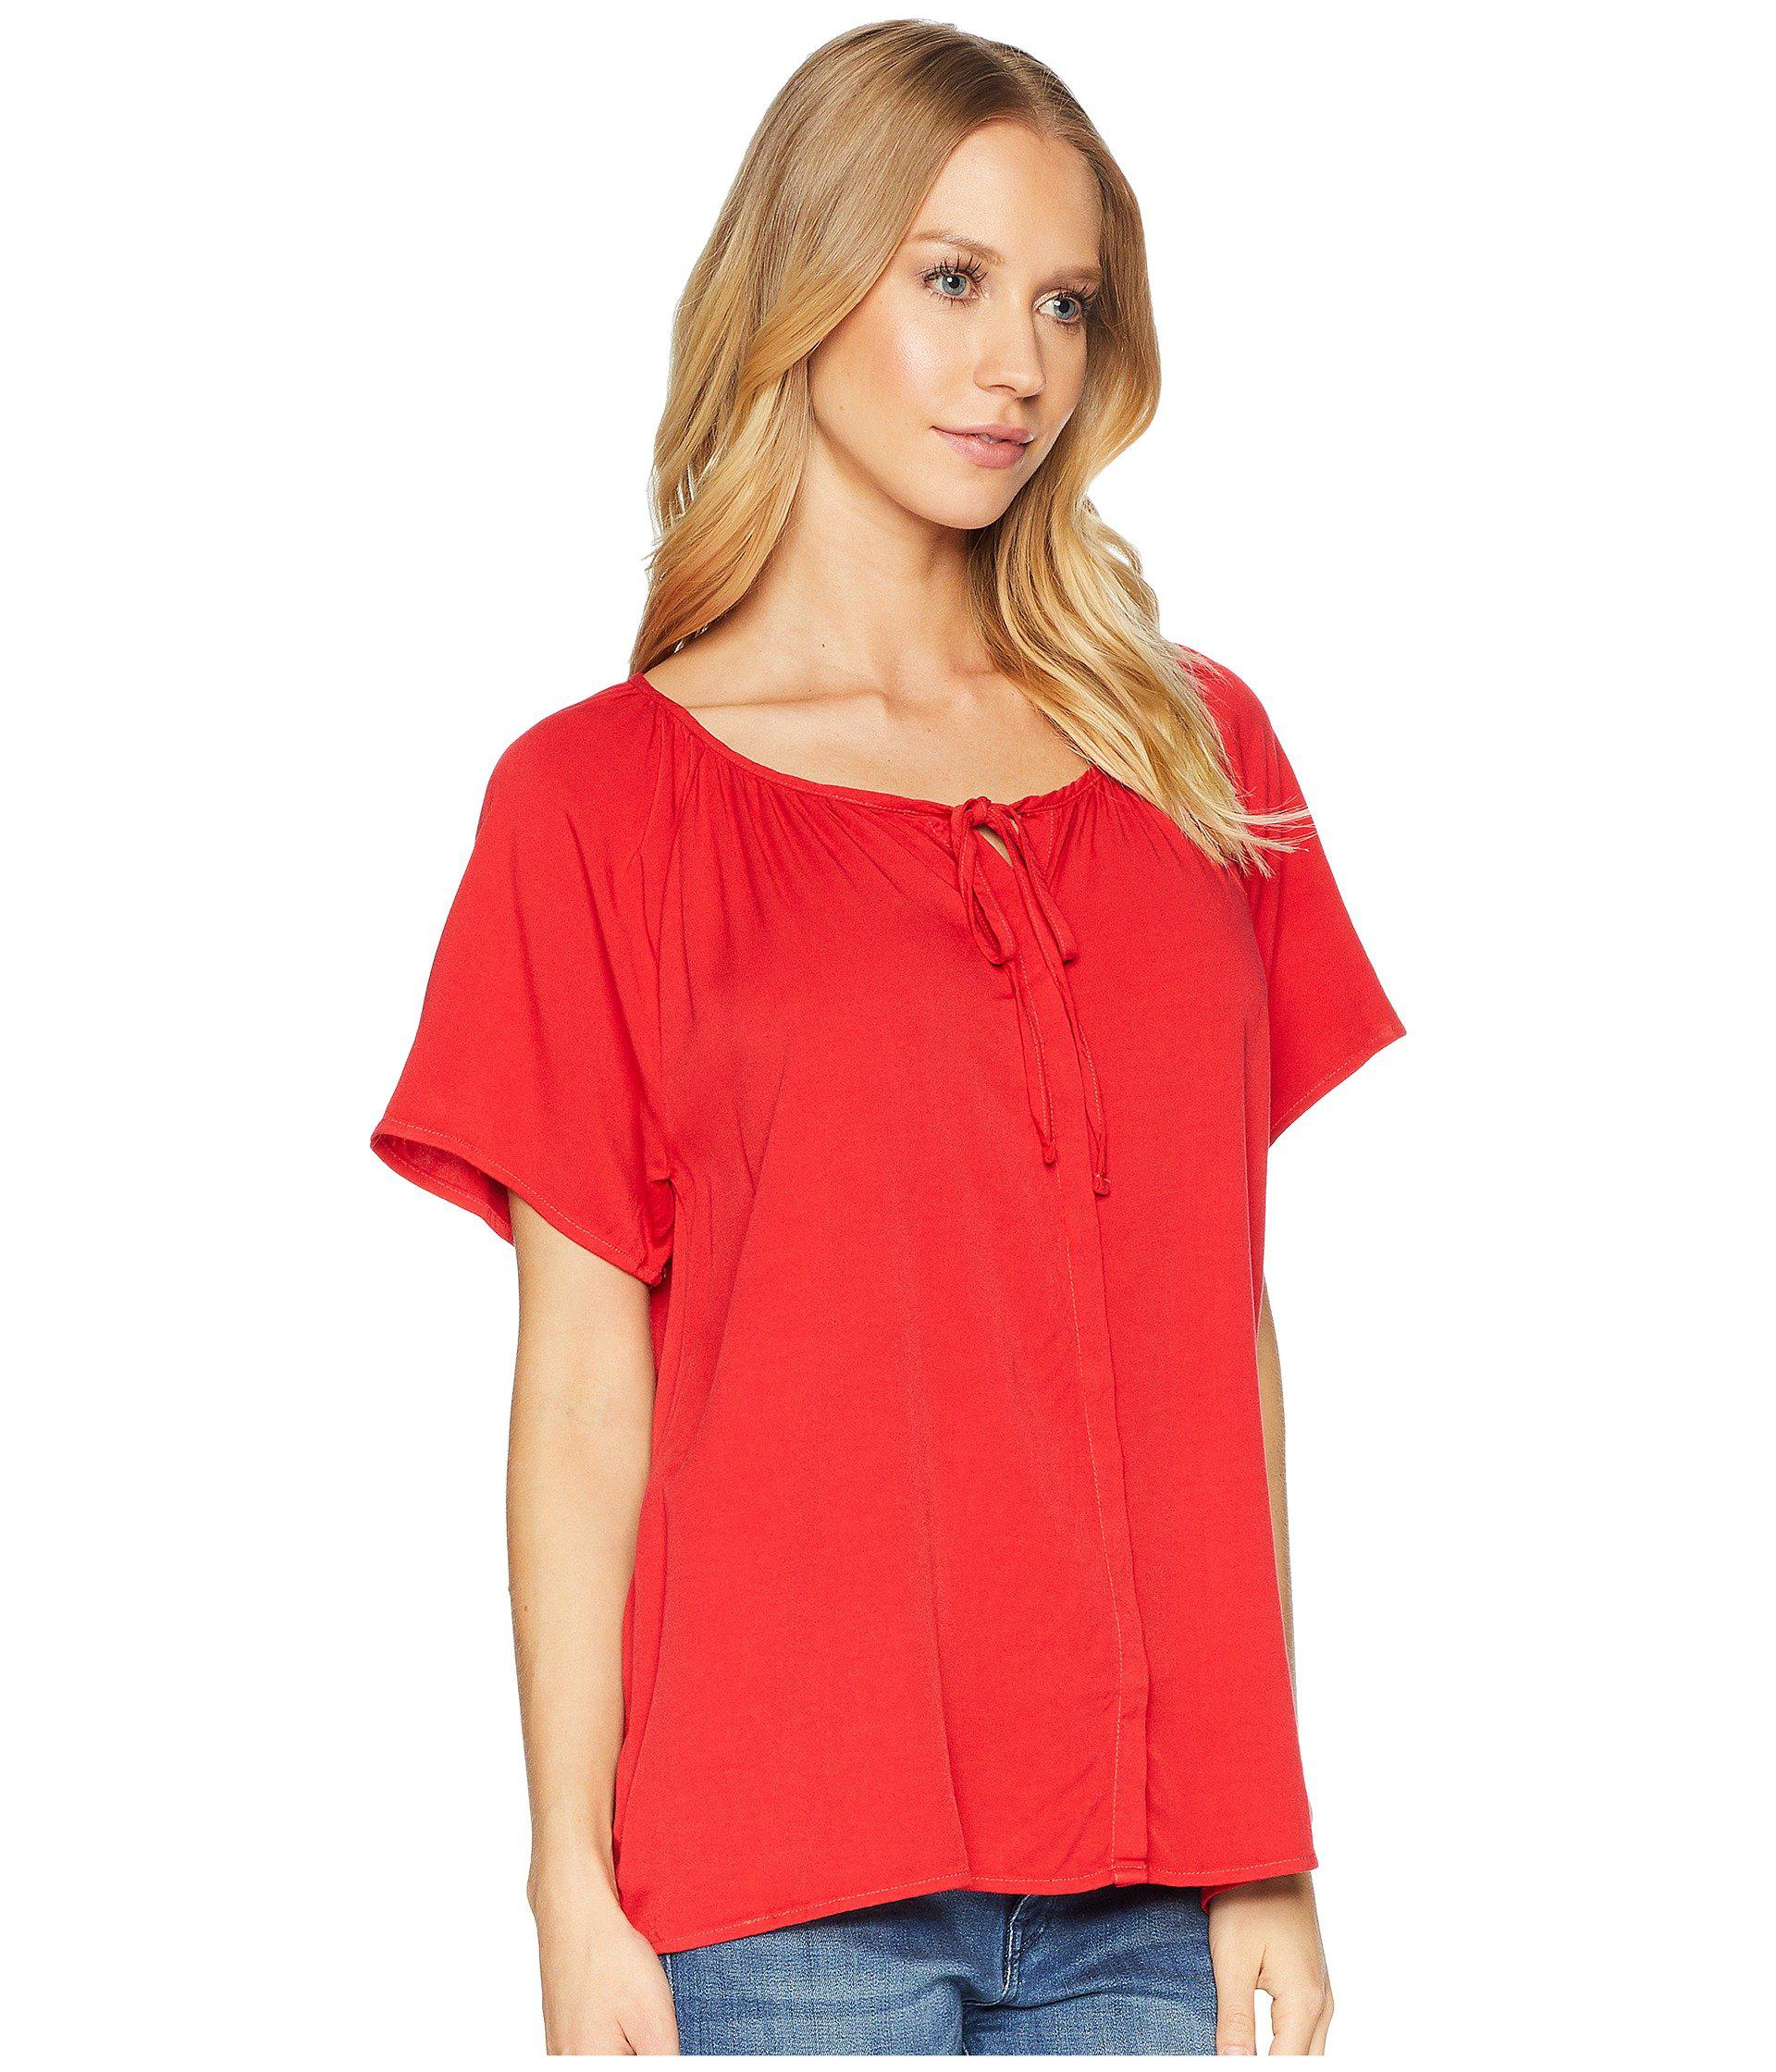 c75b43a15c Michael Stars - Red Rylie Rayon Button Up Peasant Top - Lyst. View  fullscreen